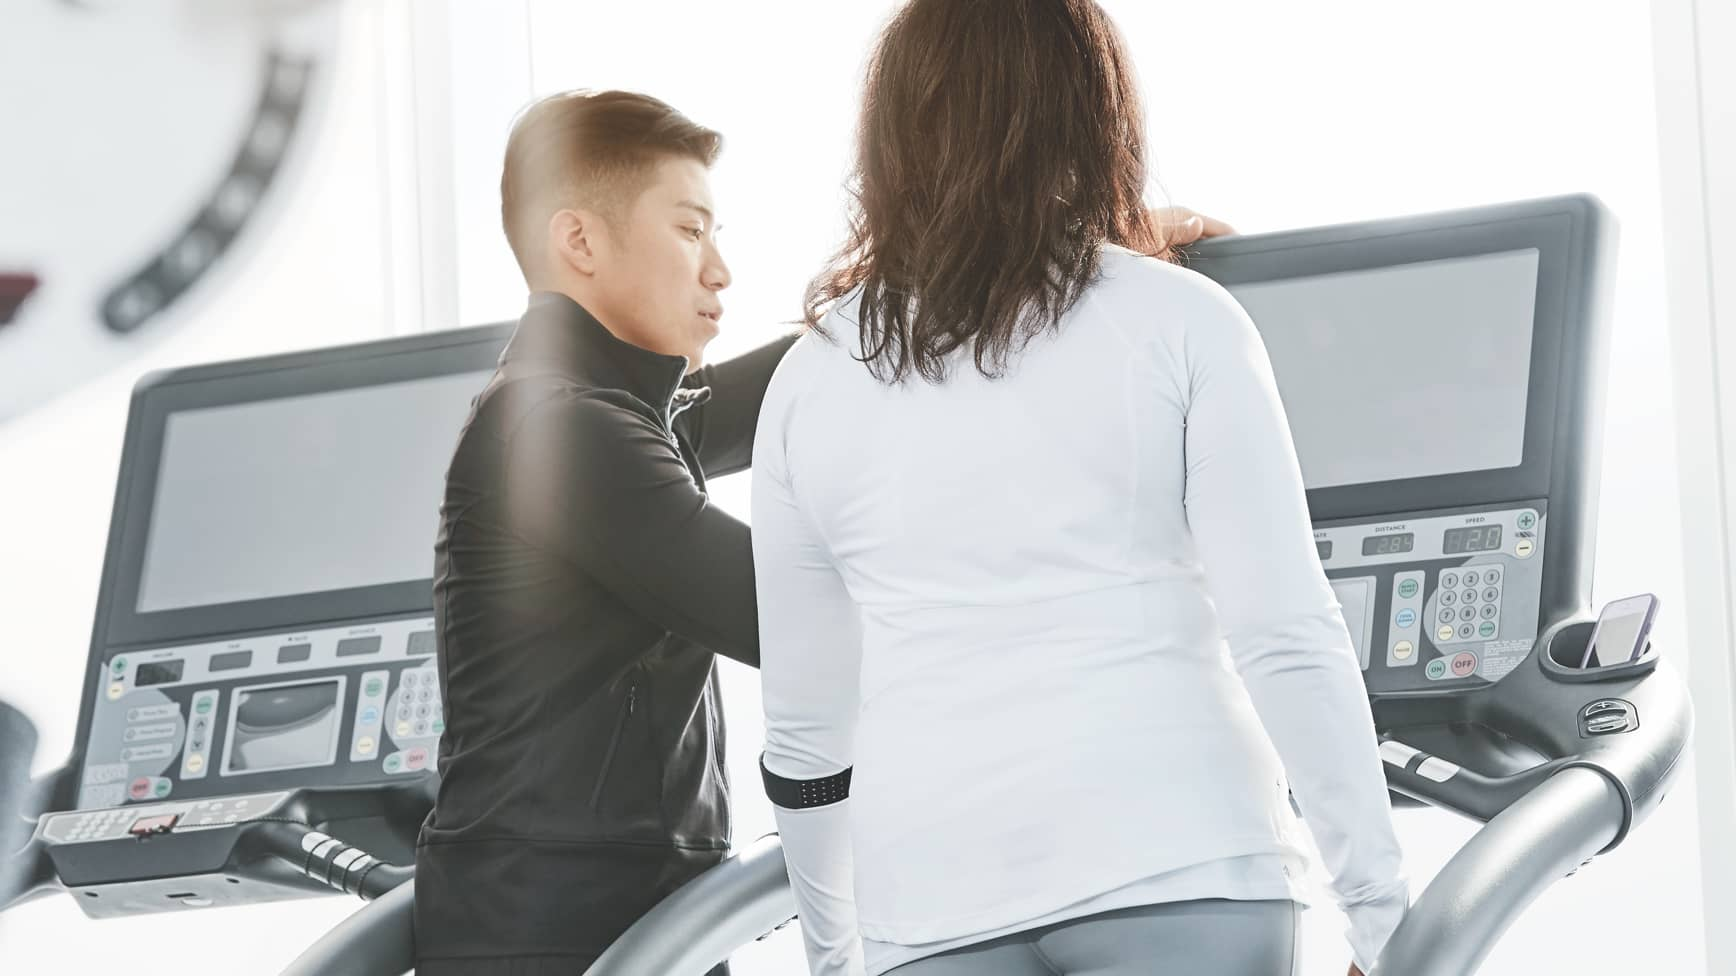 A trainer consults with his client, who is standing on a treadmill